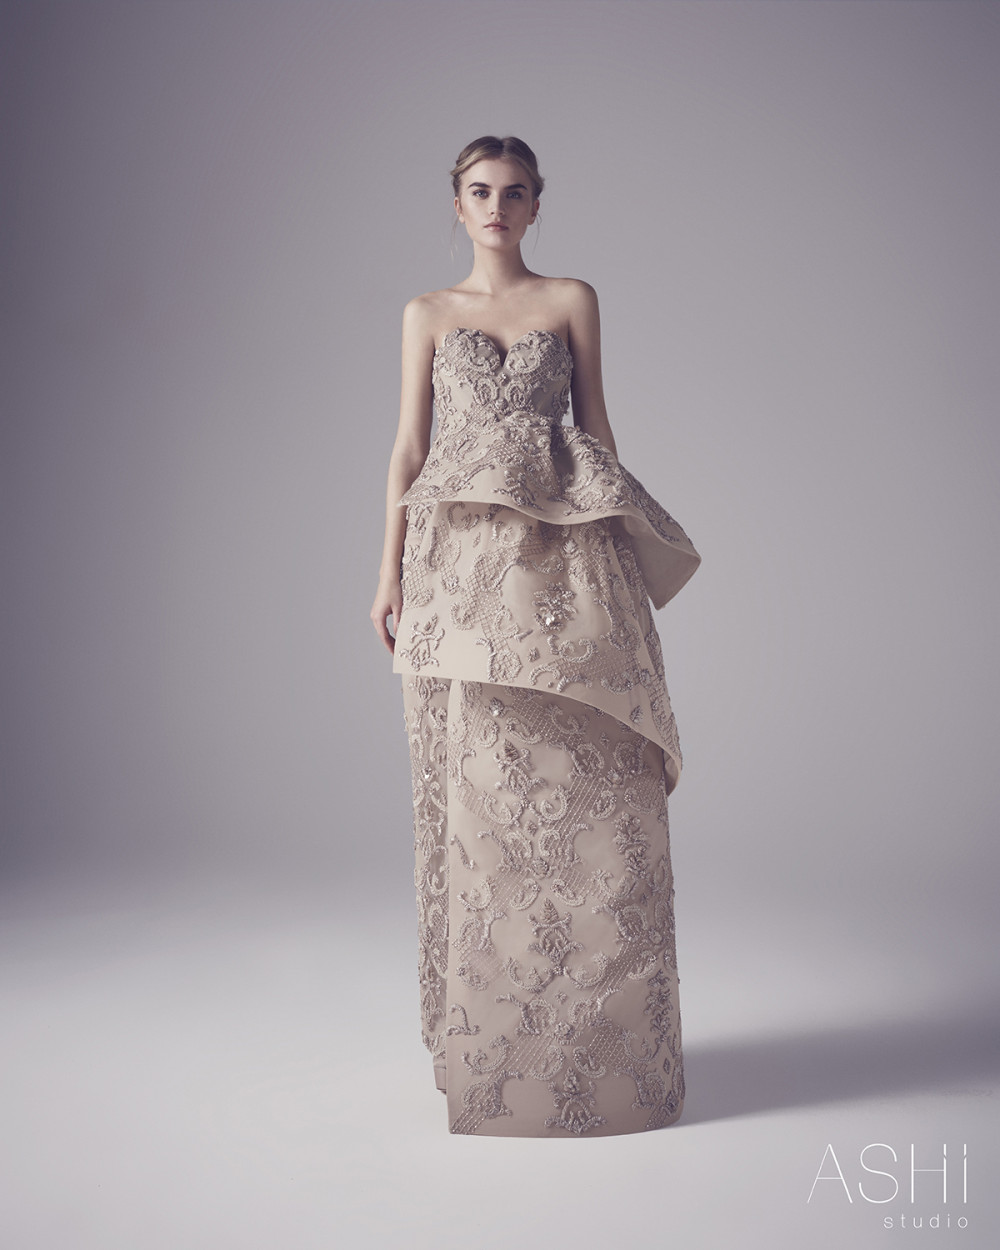 Ashi Studio_Spring Summer 2016 Couture Collection_BellaNaija Weddings_Ashi_17-033_large